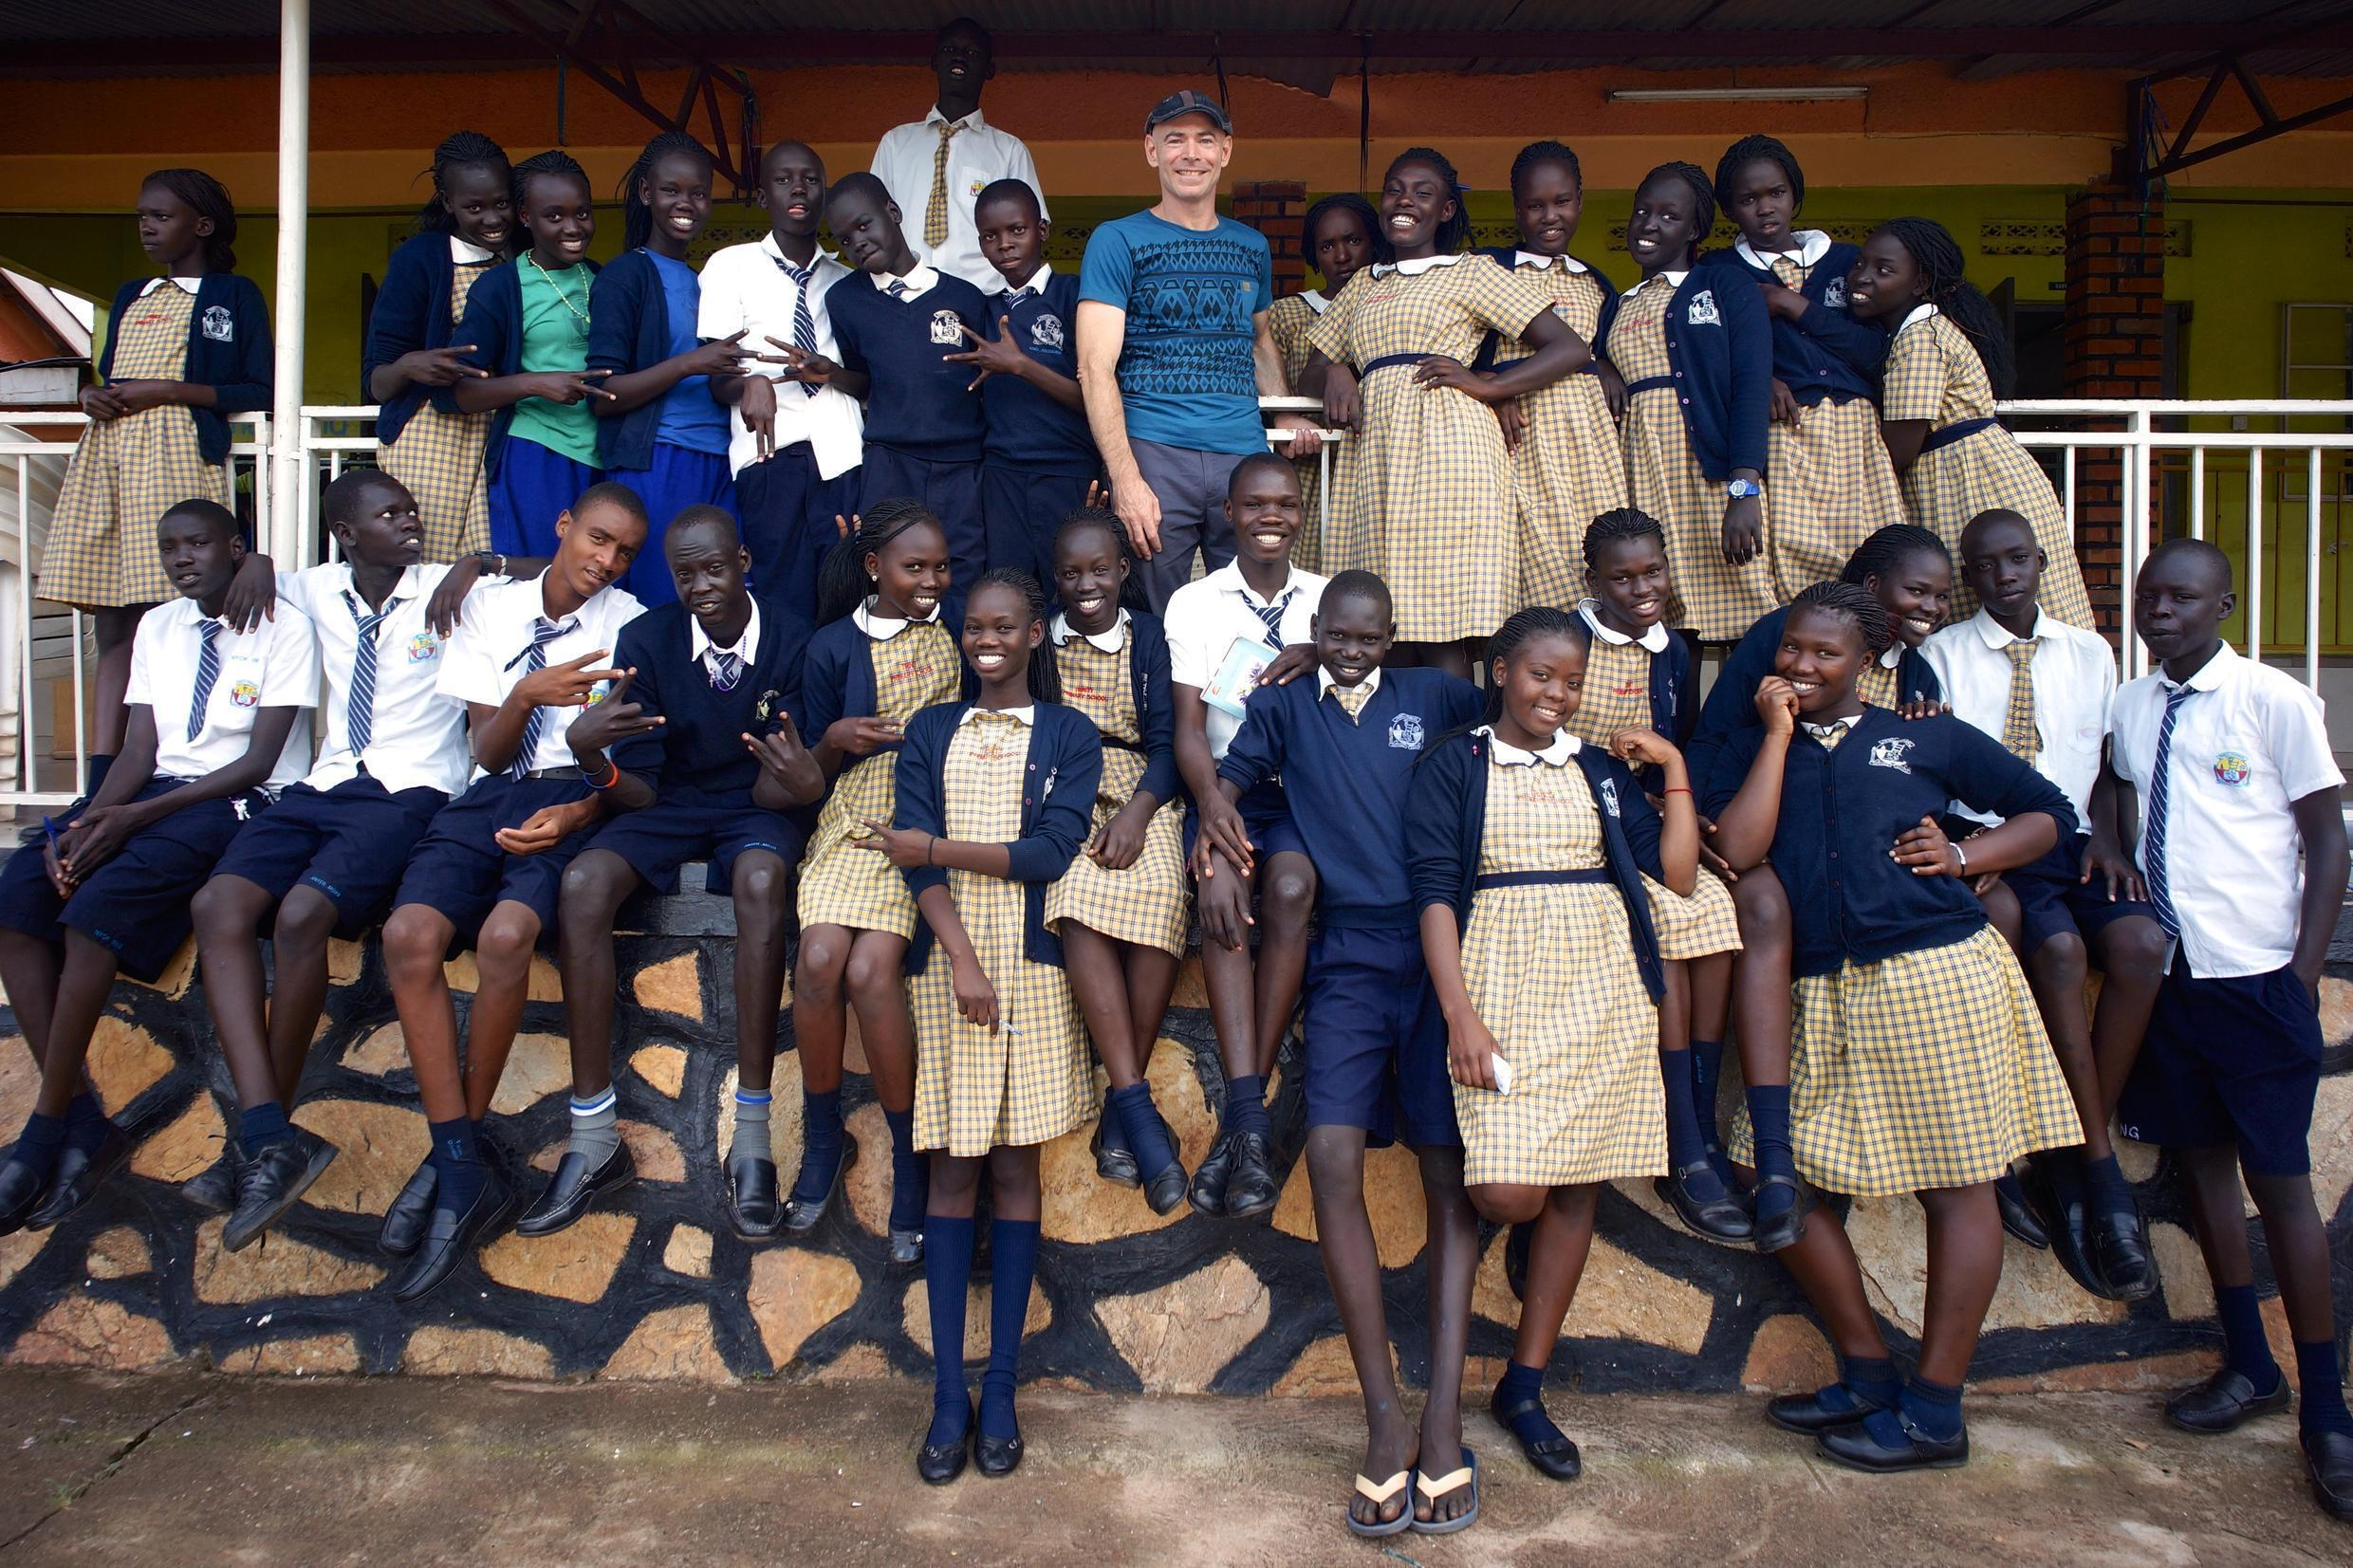 South Sudanese students at Trinity boarding school in Uganda. In the middle of the top row, the man with a hat is Rami Gudovitch, programme co-director for the Come True project, which funds the children's schooling. Photo courtesy of Rami Gudovitch.